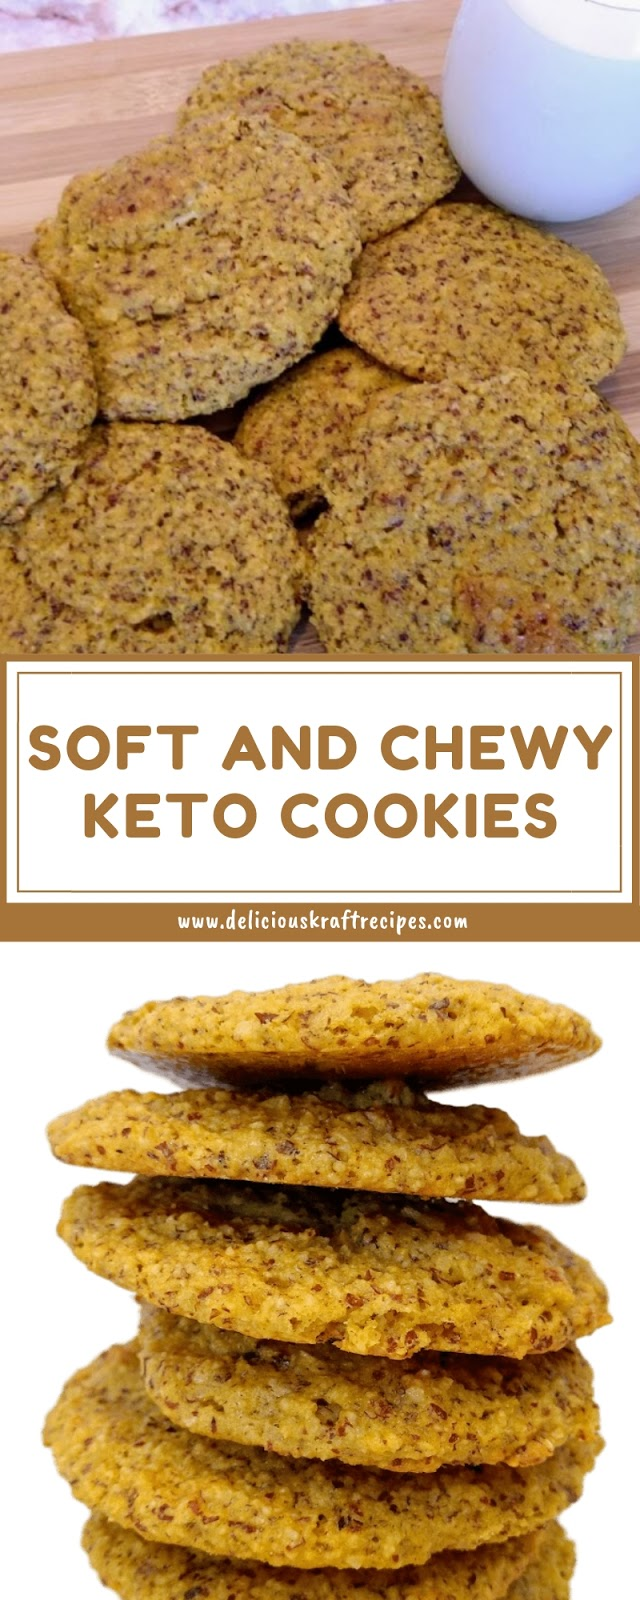 SOFT AND CHEWY KETO COOKIES